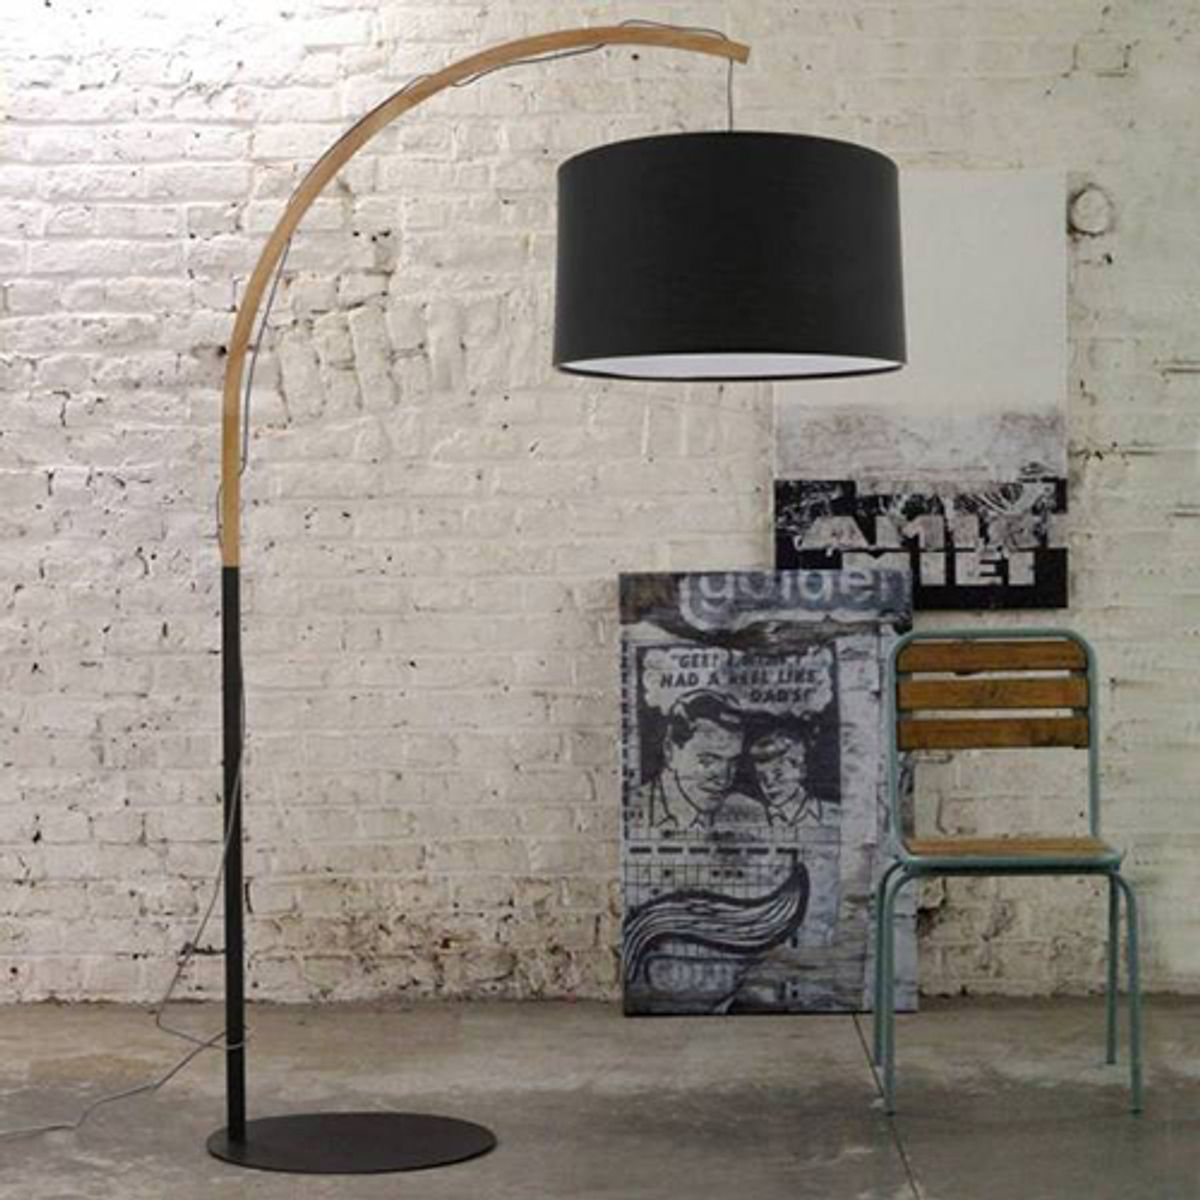 lampadaire arqu en m tal noir et bois clair clint red cartel decoclico. Black Bedroom Furniture Sets. Home Design Ideas